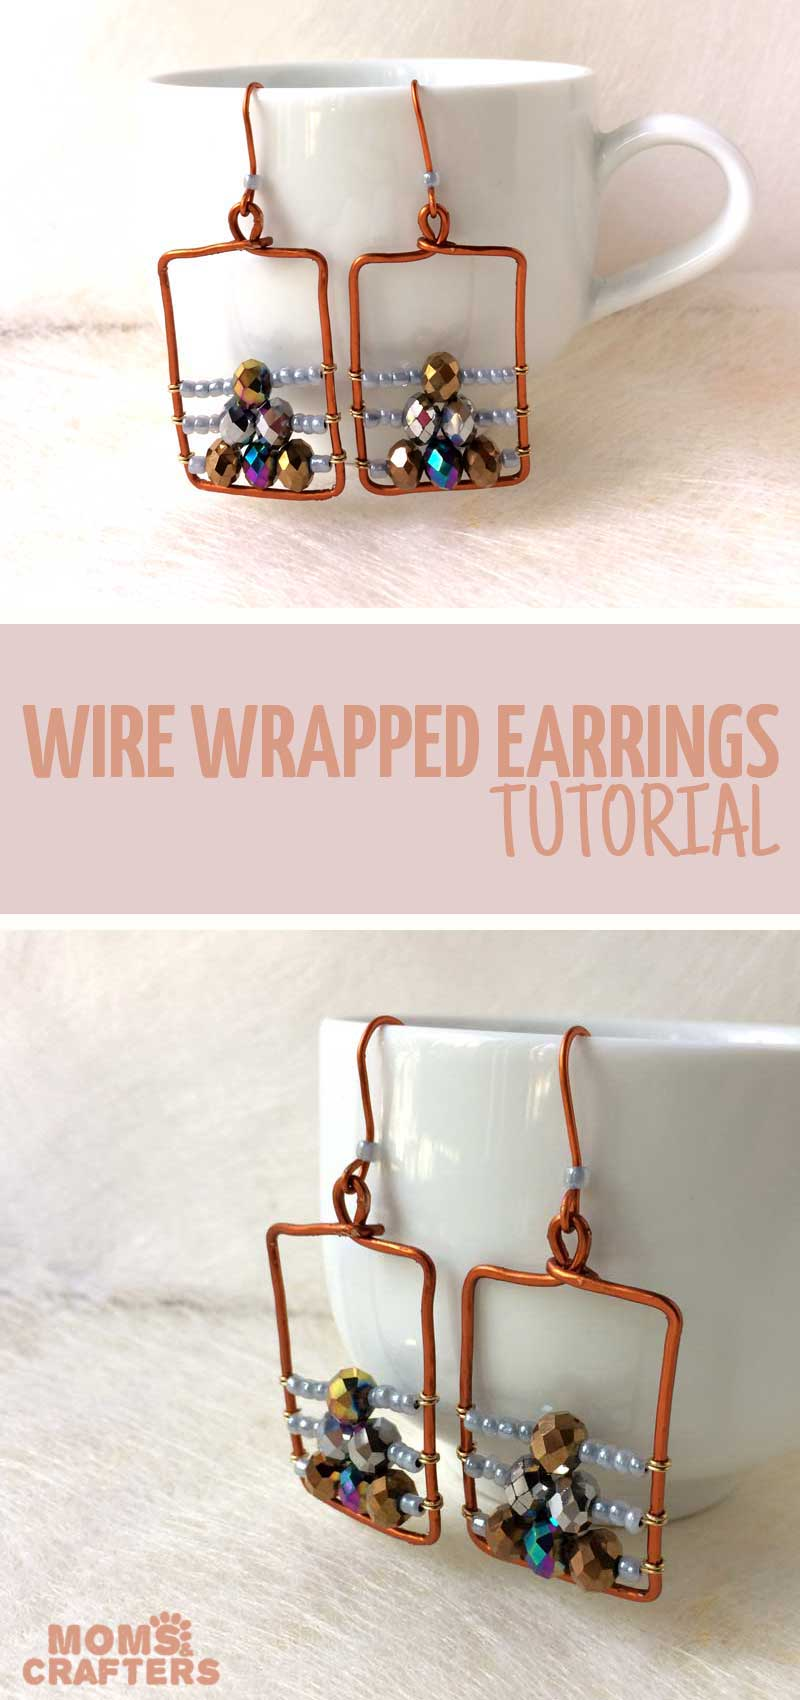 Wire wrapped earrings tutorial beaded frames moms and crafters beautiful classy wire wrapped earrings tutoiral for beginners or experts baditri Images